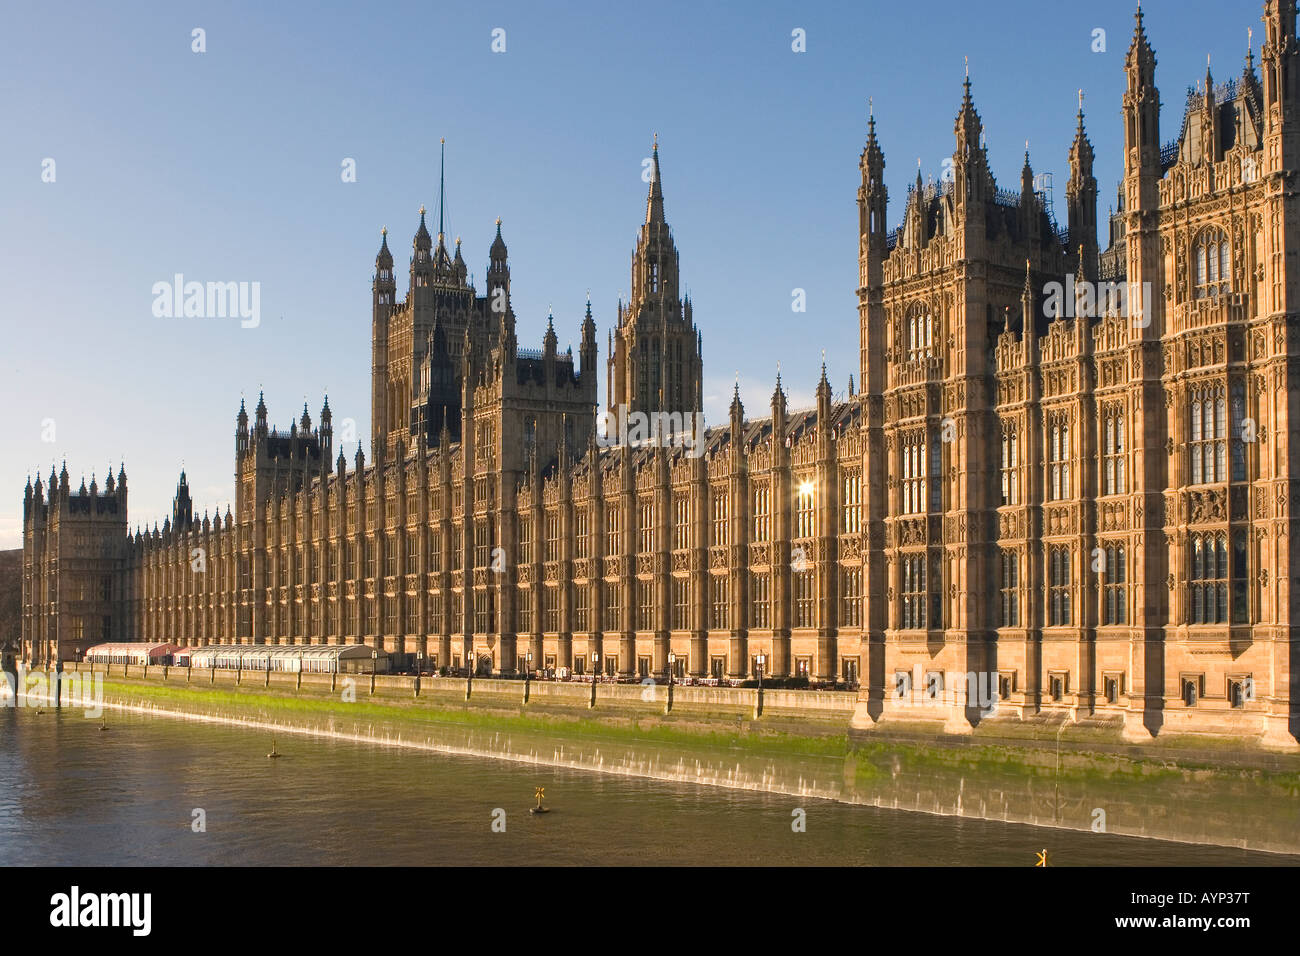 The Houses of Parliament viewed from Westminster Bridge,London, England - Stock Image